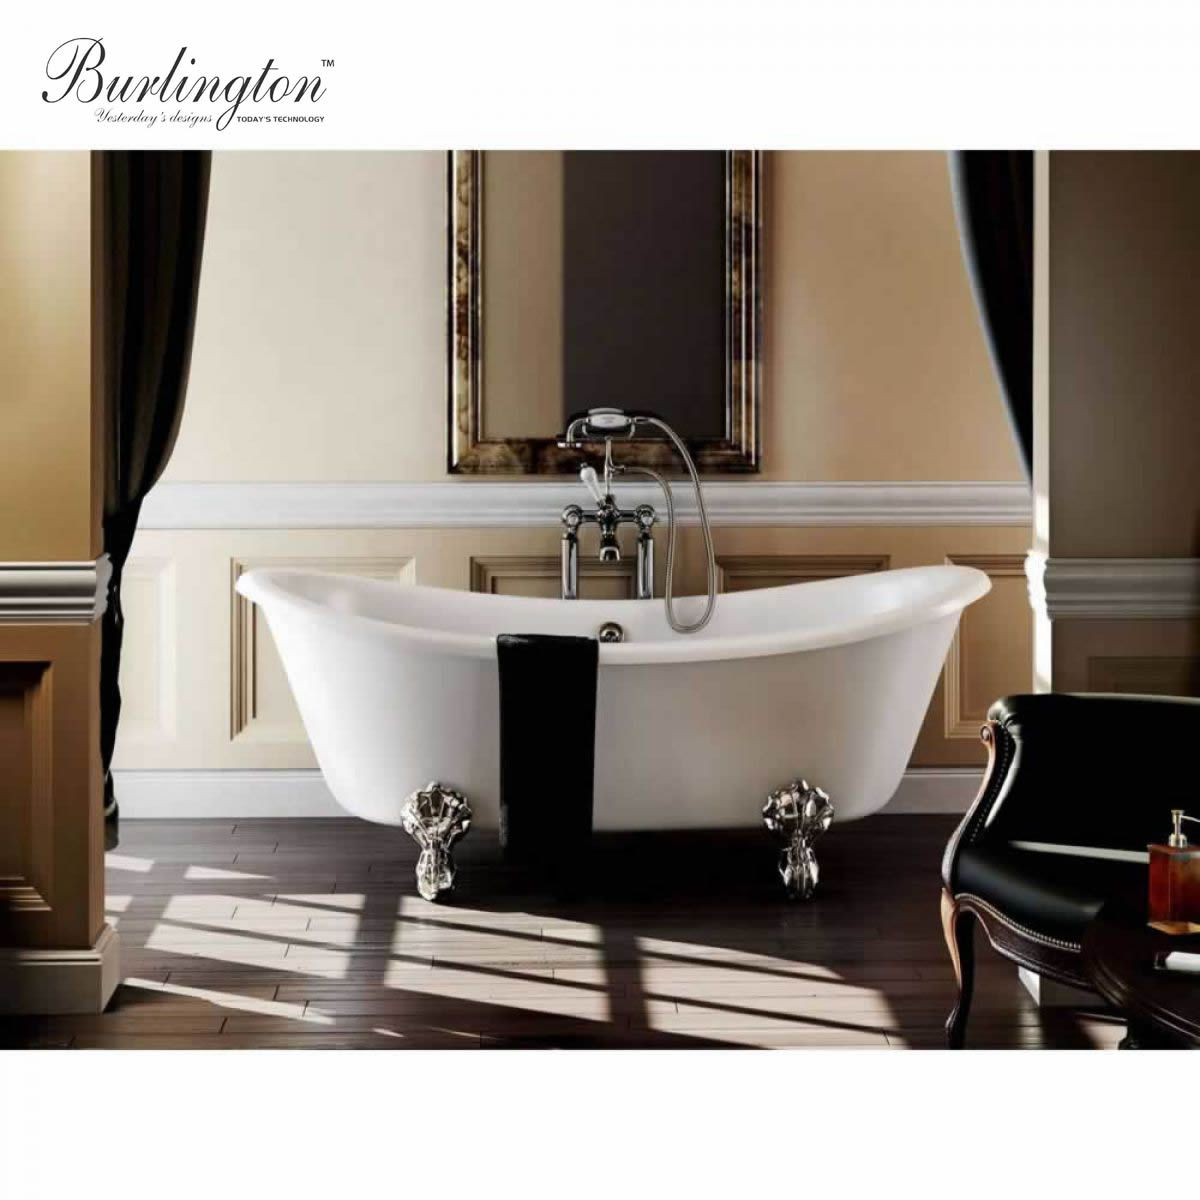 Comfortable Tub Paint Tiny Paint Bathtub Square Bathtub Repair Contractor Painting A Tub Youthful Can You Paint A Tub Purple Painting Tub